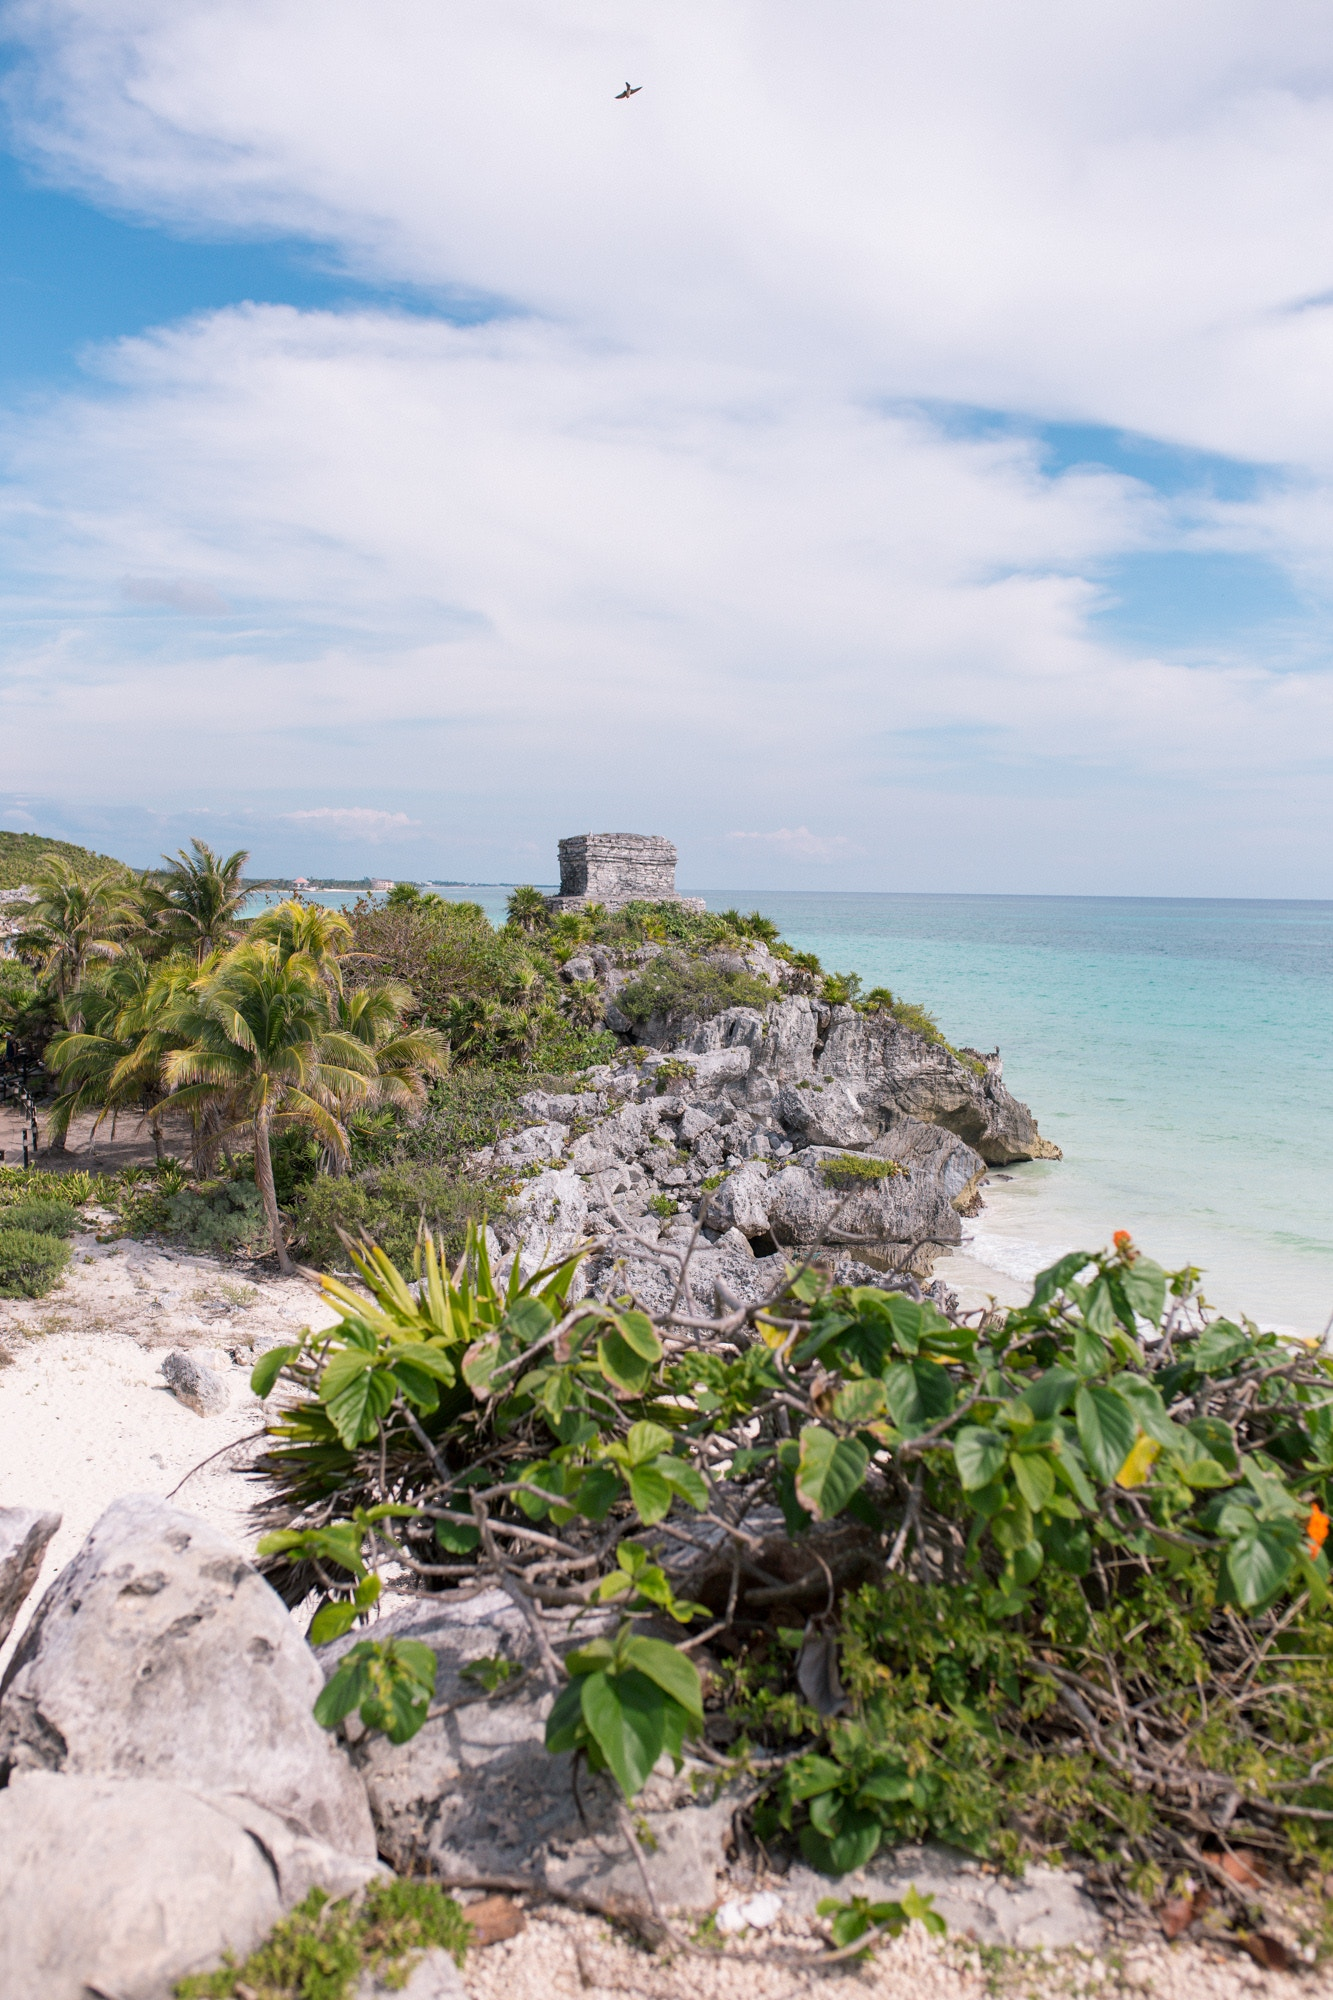 10 Tips for visiting the Tulum Mayan Ruins and Archaeological Site - nataliastyleblog.com